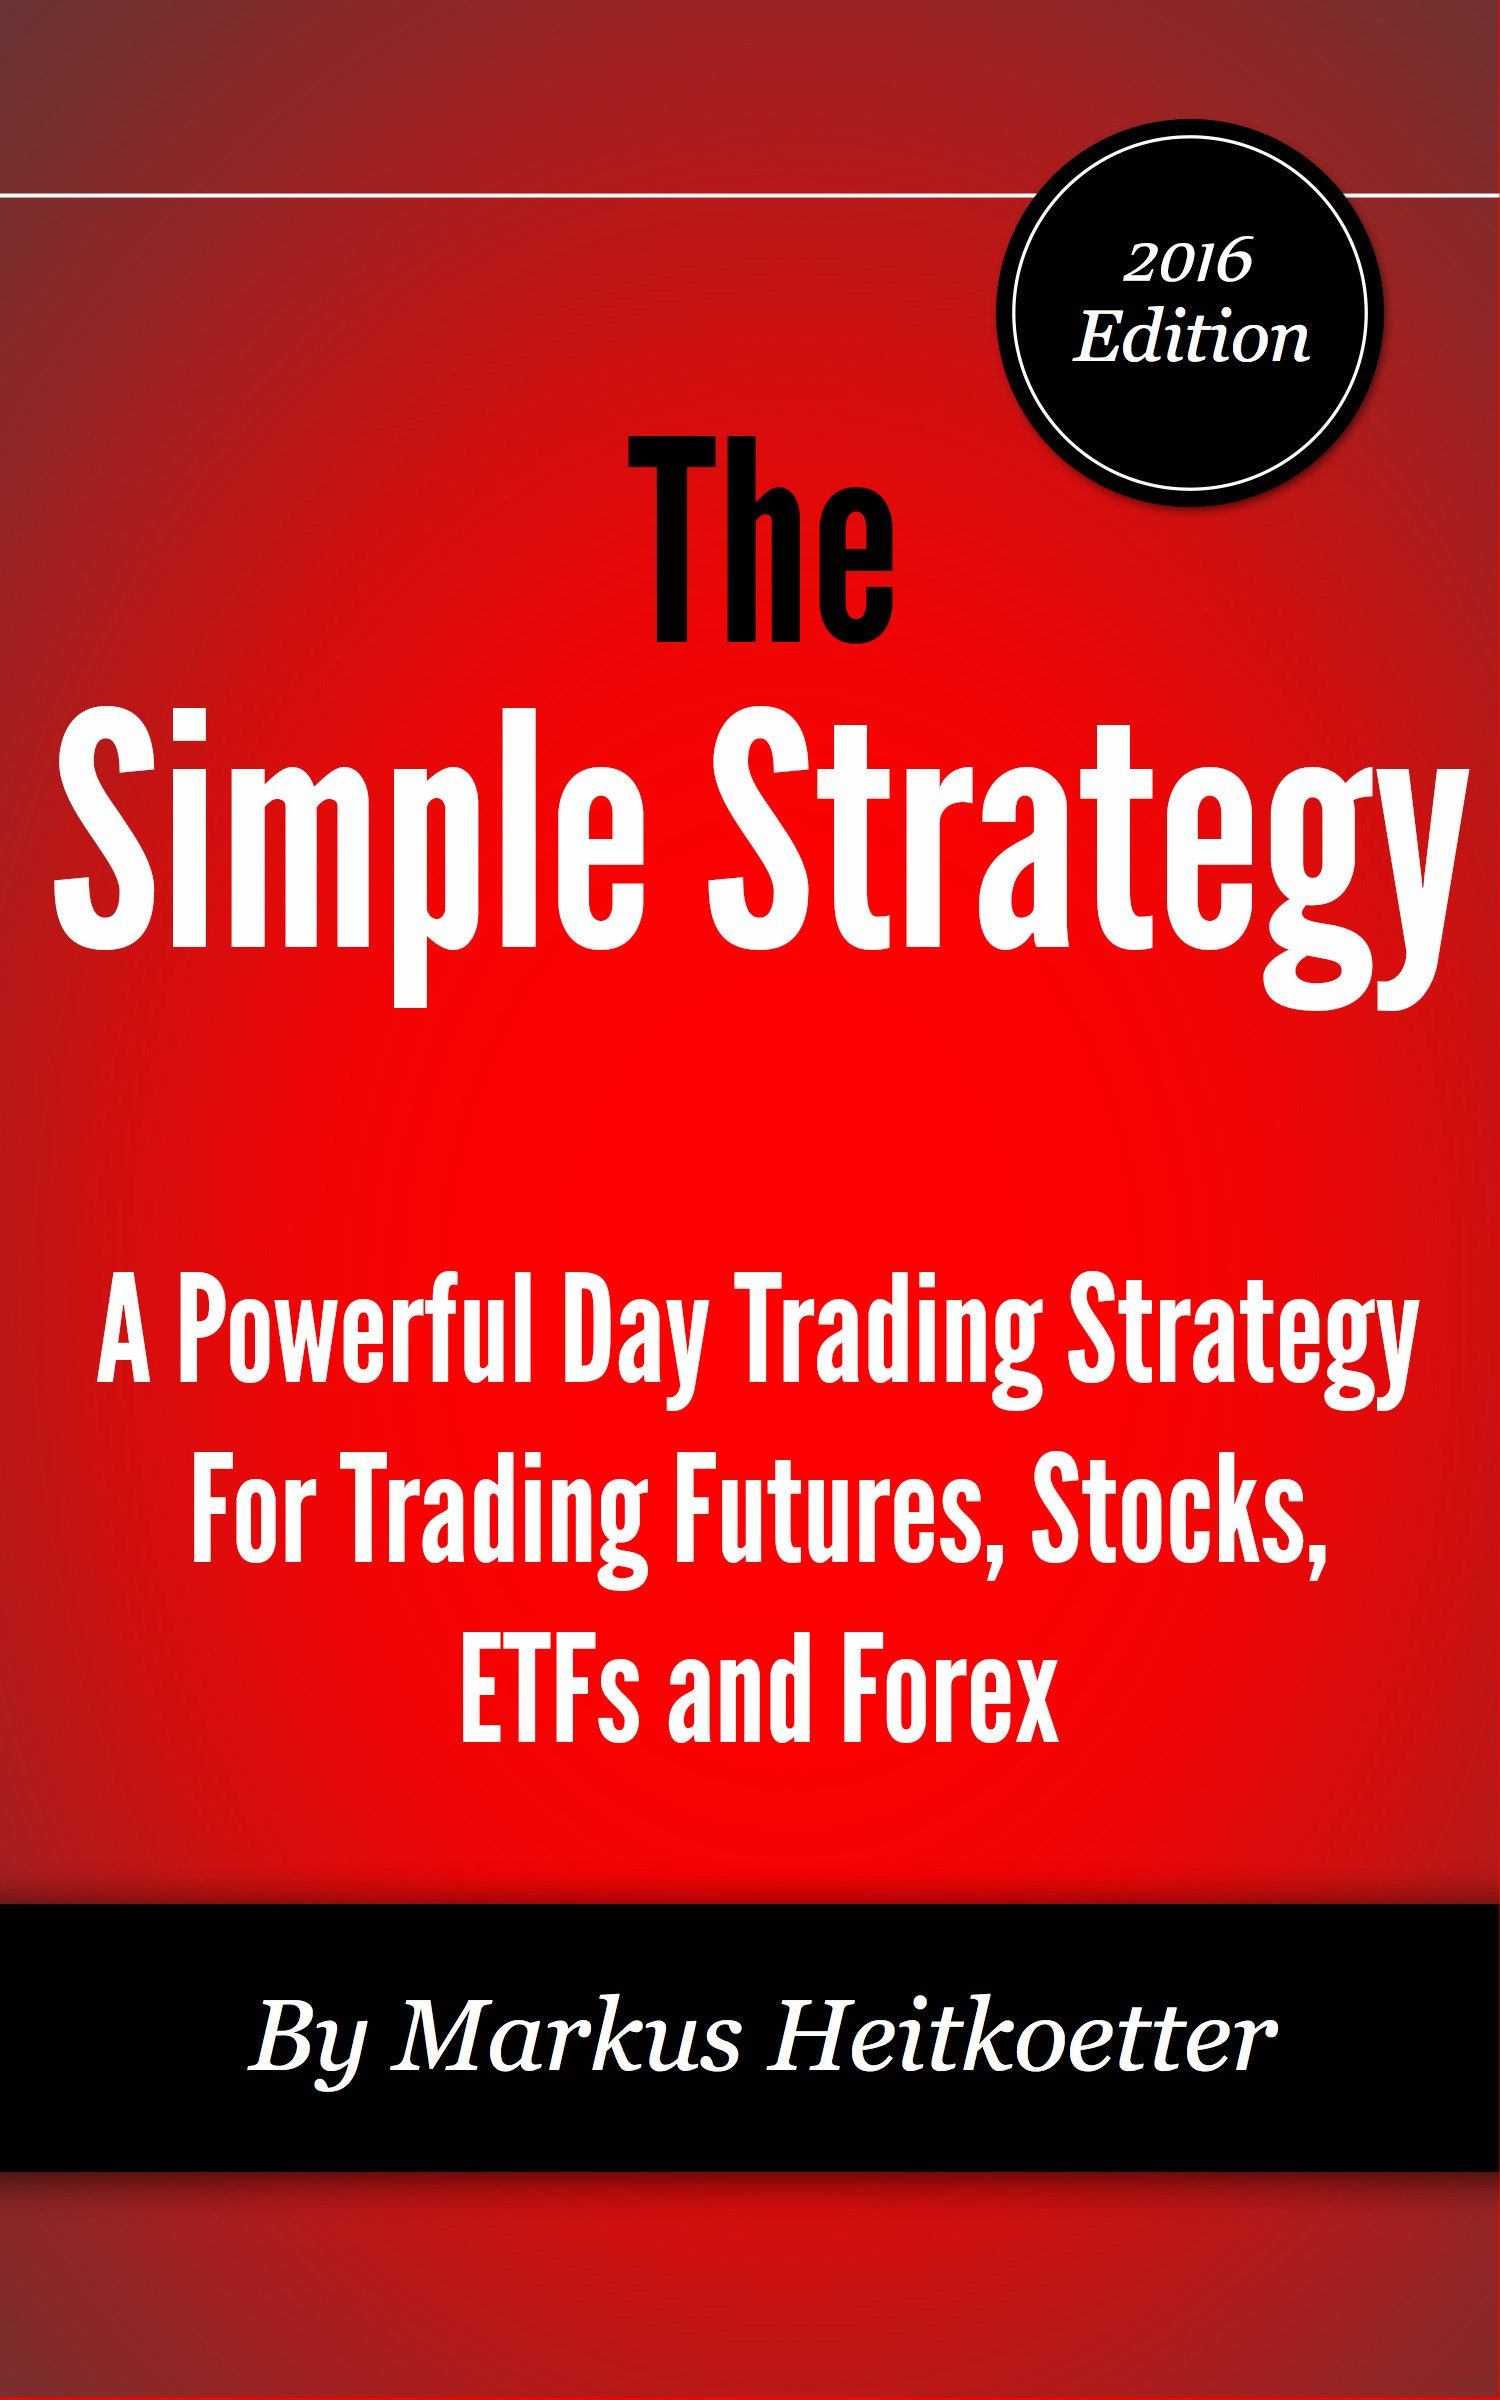 Image OfThe Simple Strategy - A Powerful Day Trading Strategy For Trading Futures, Stocks, ETFs And Forex